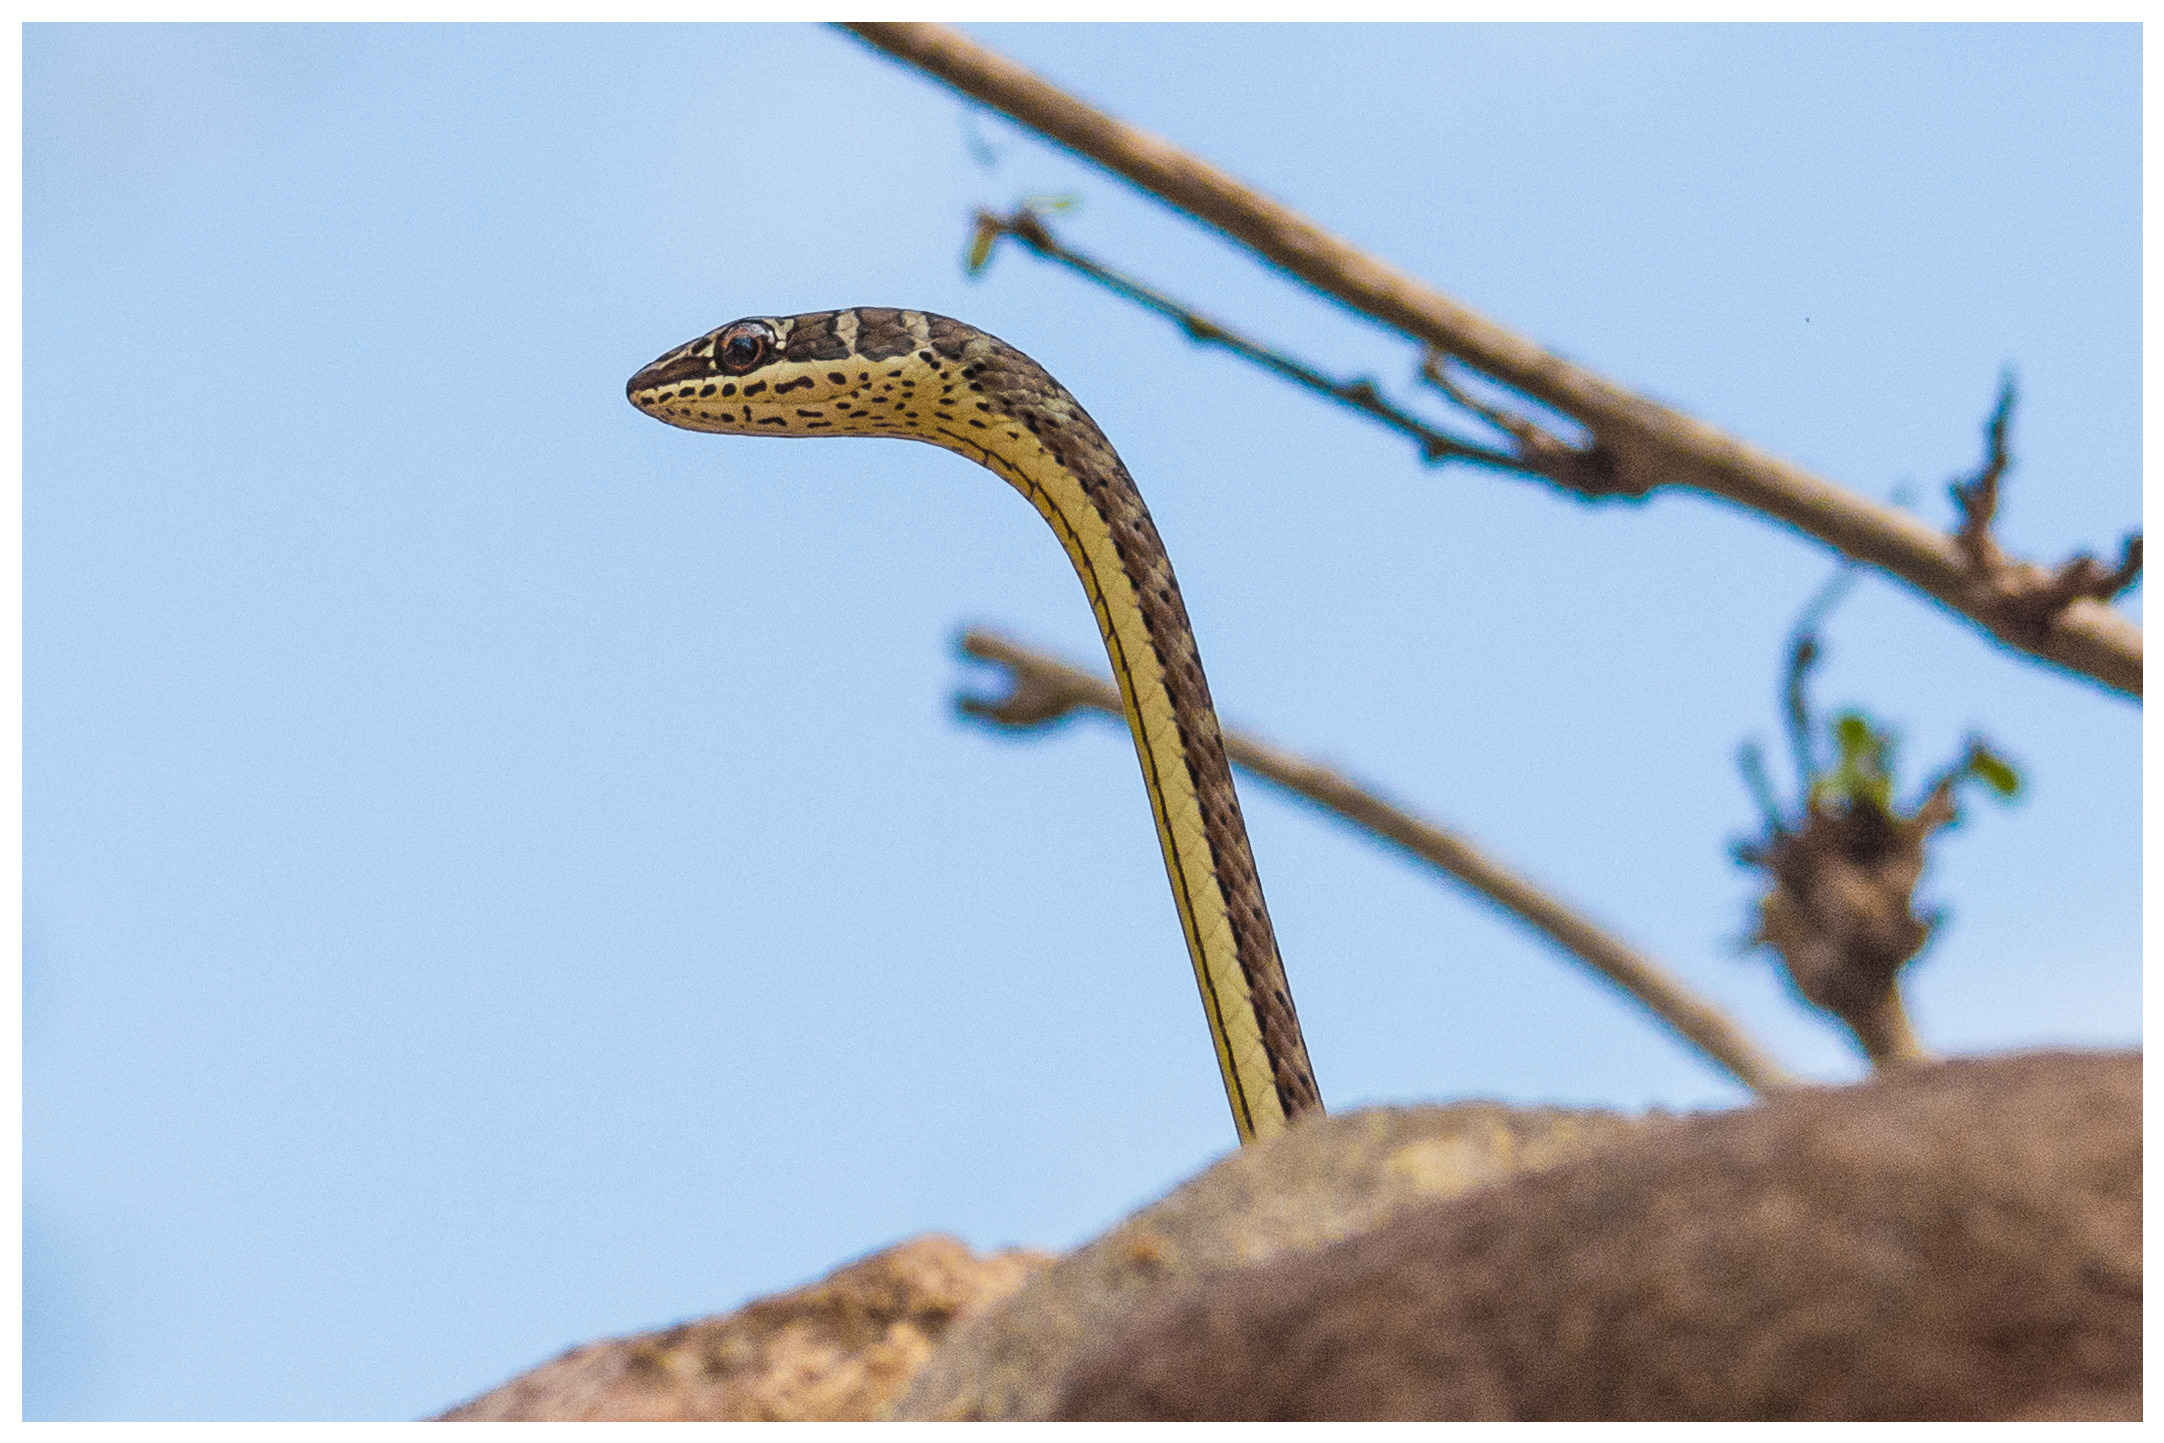 Yellow Bellied Sand Snake